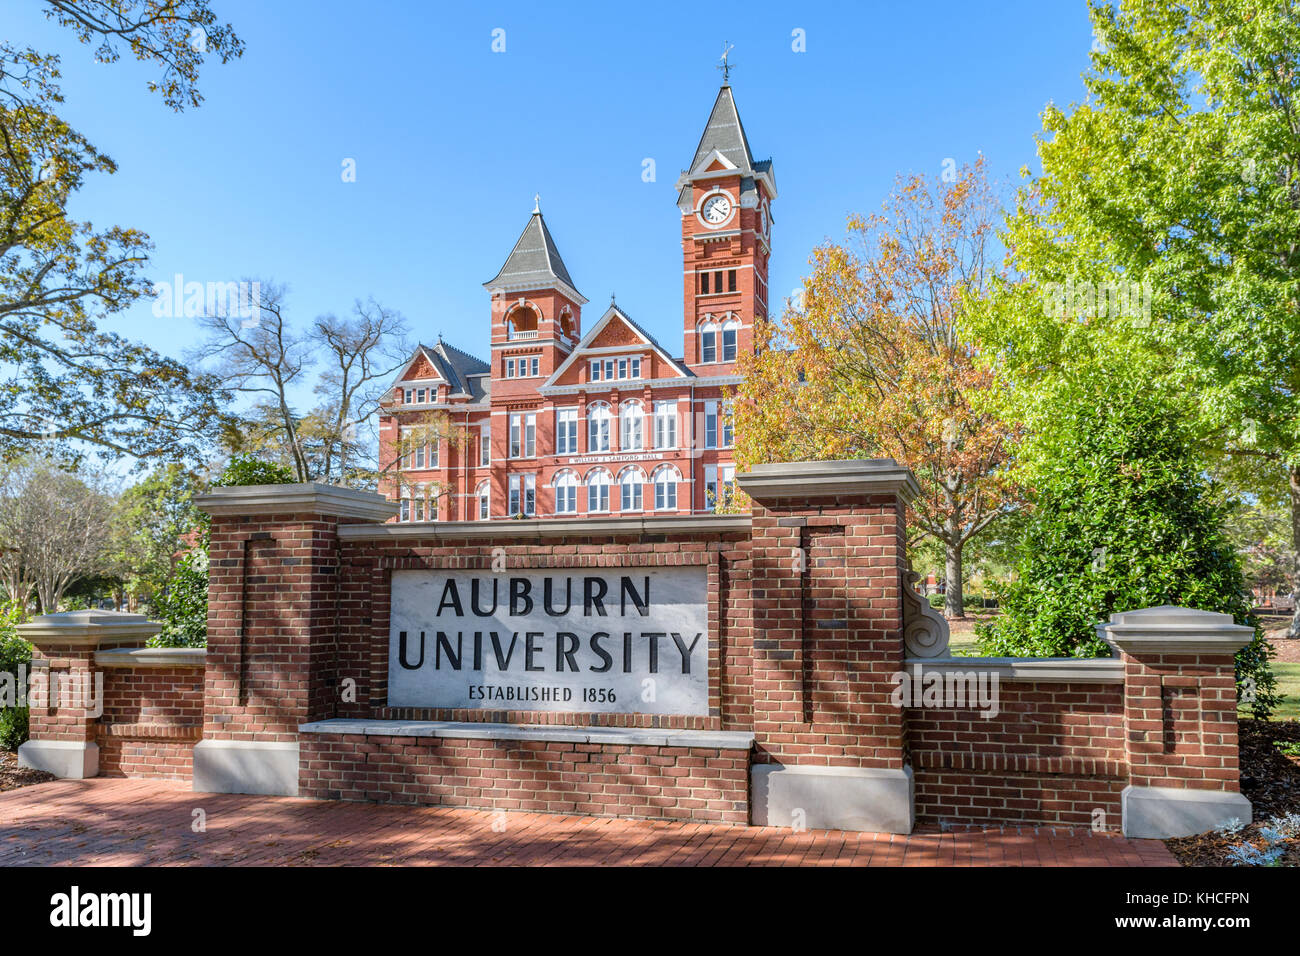 auburn-university-william-j-samford-hall